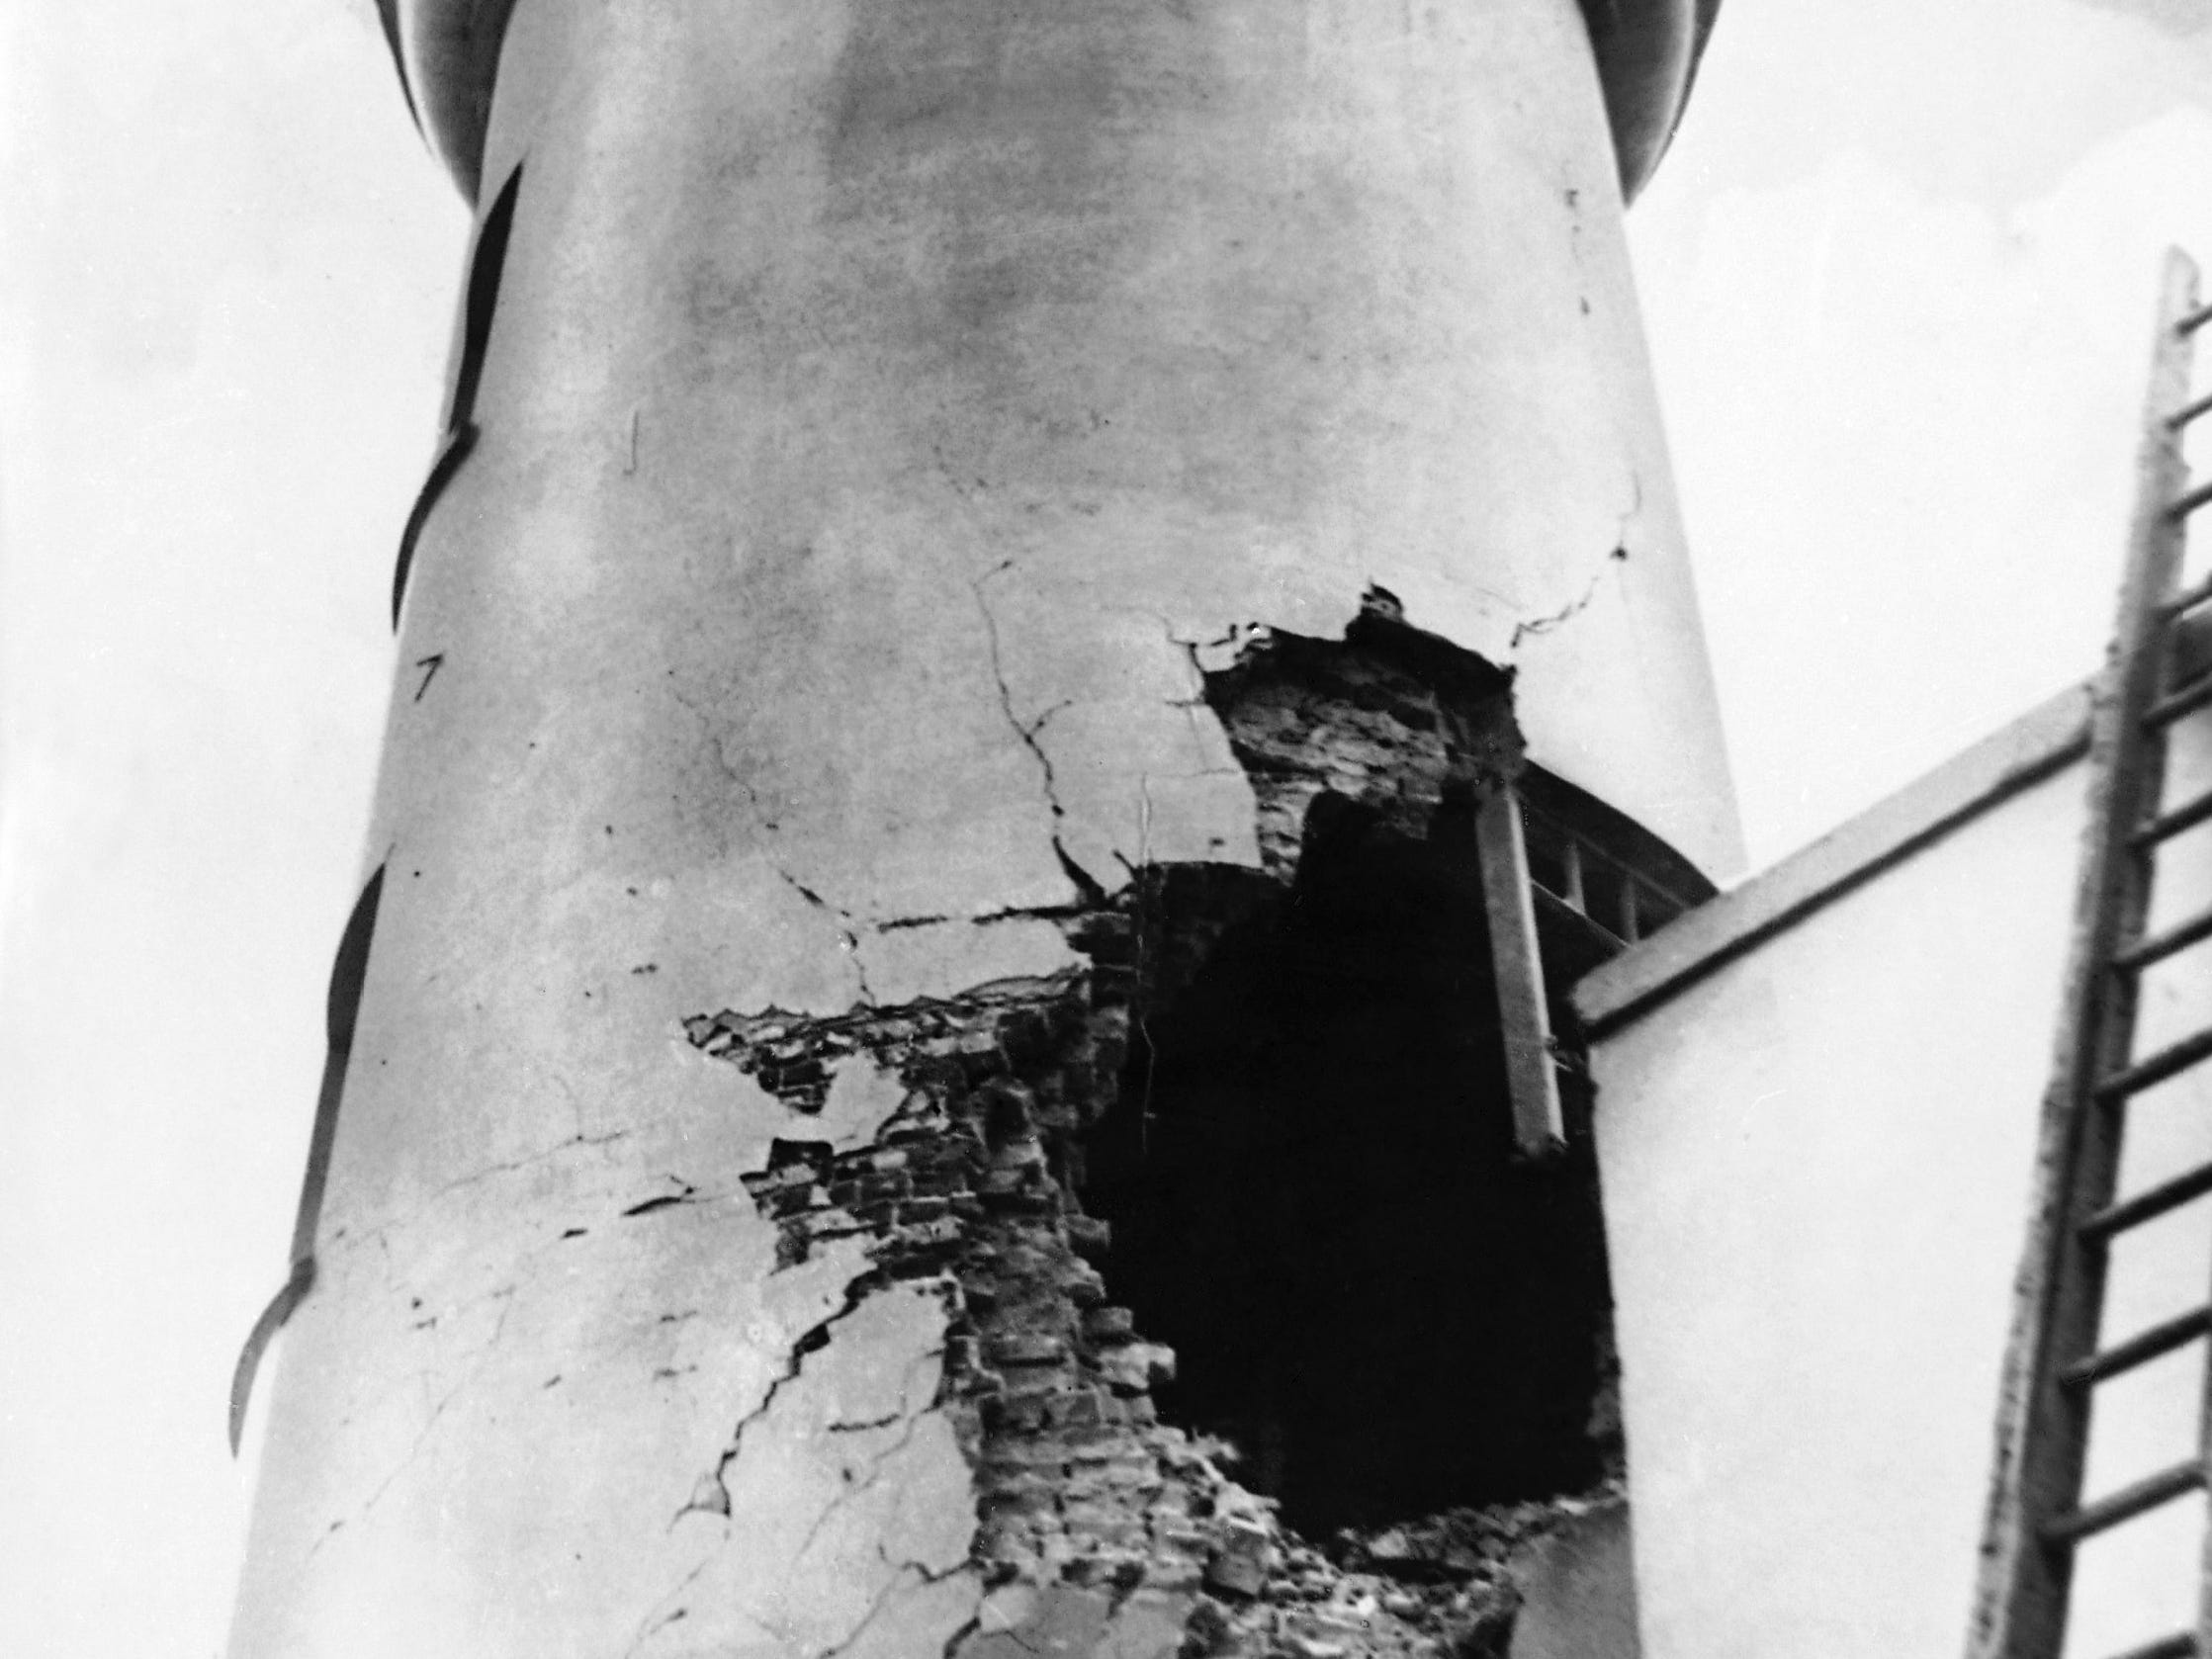 This December 1914 photo shows damage from German bombardment to the lighthouse in Scarborough northern England during World War I.